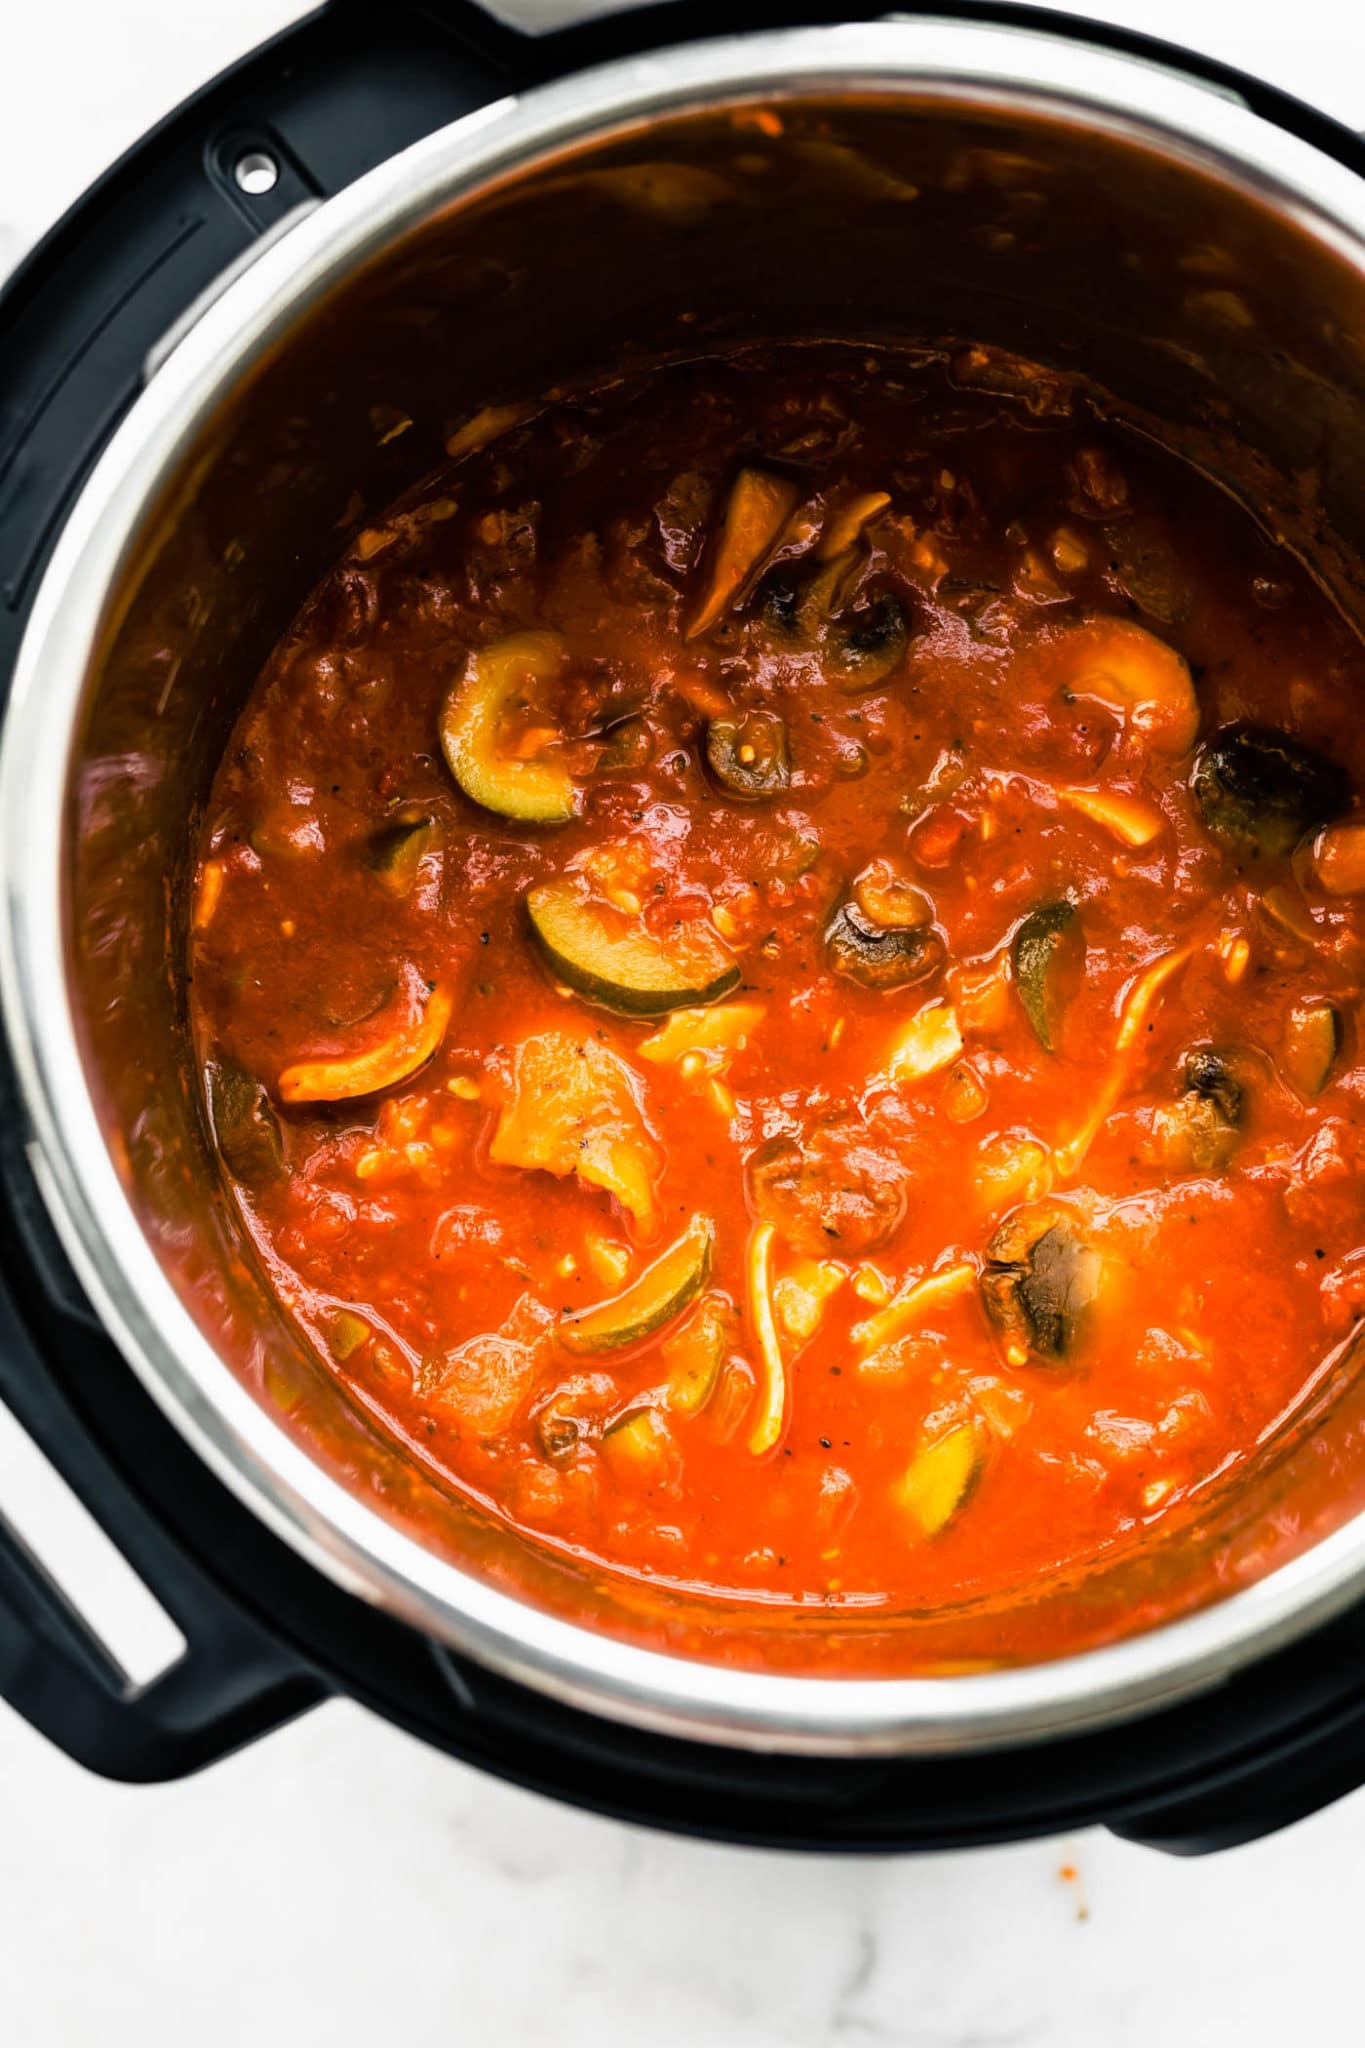 mushrroms and other veggies in an instant pot covred with a tomato sauce